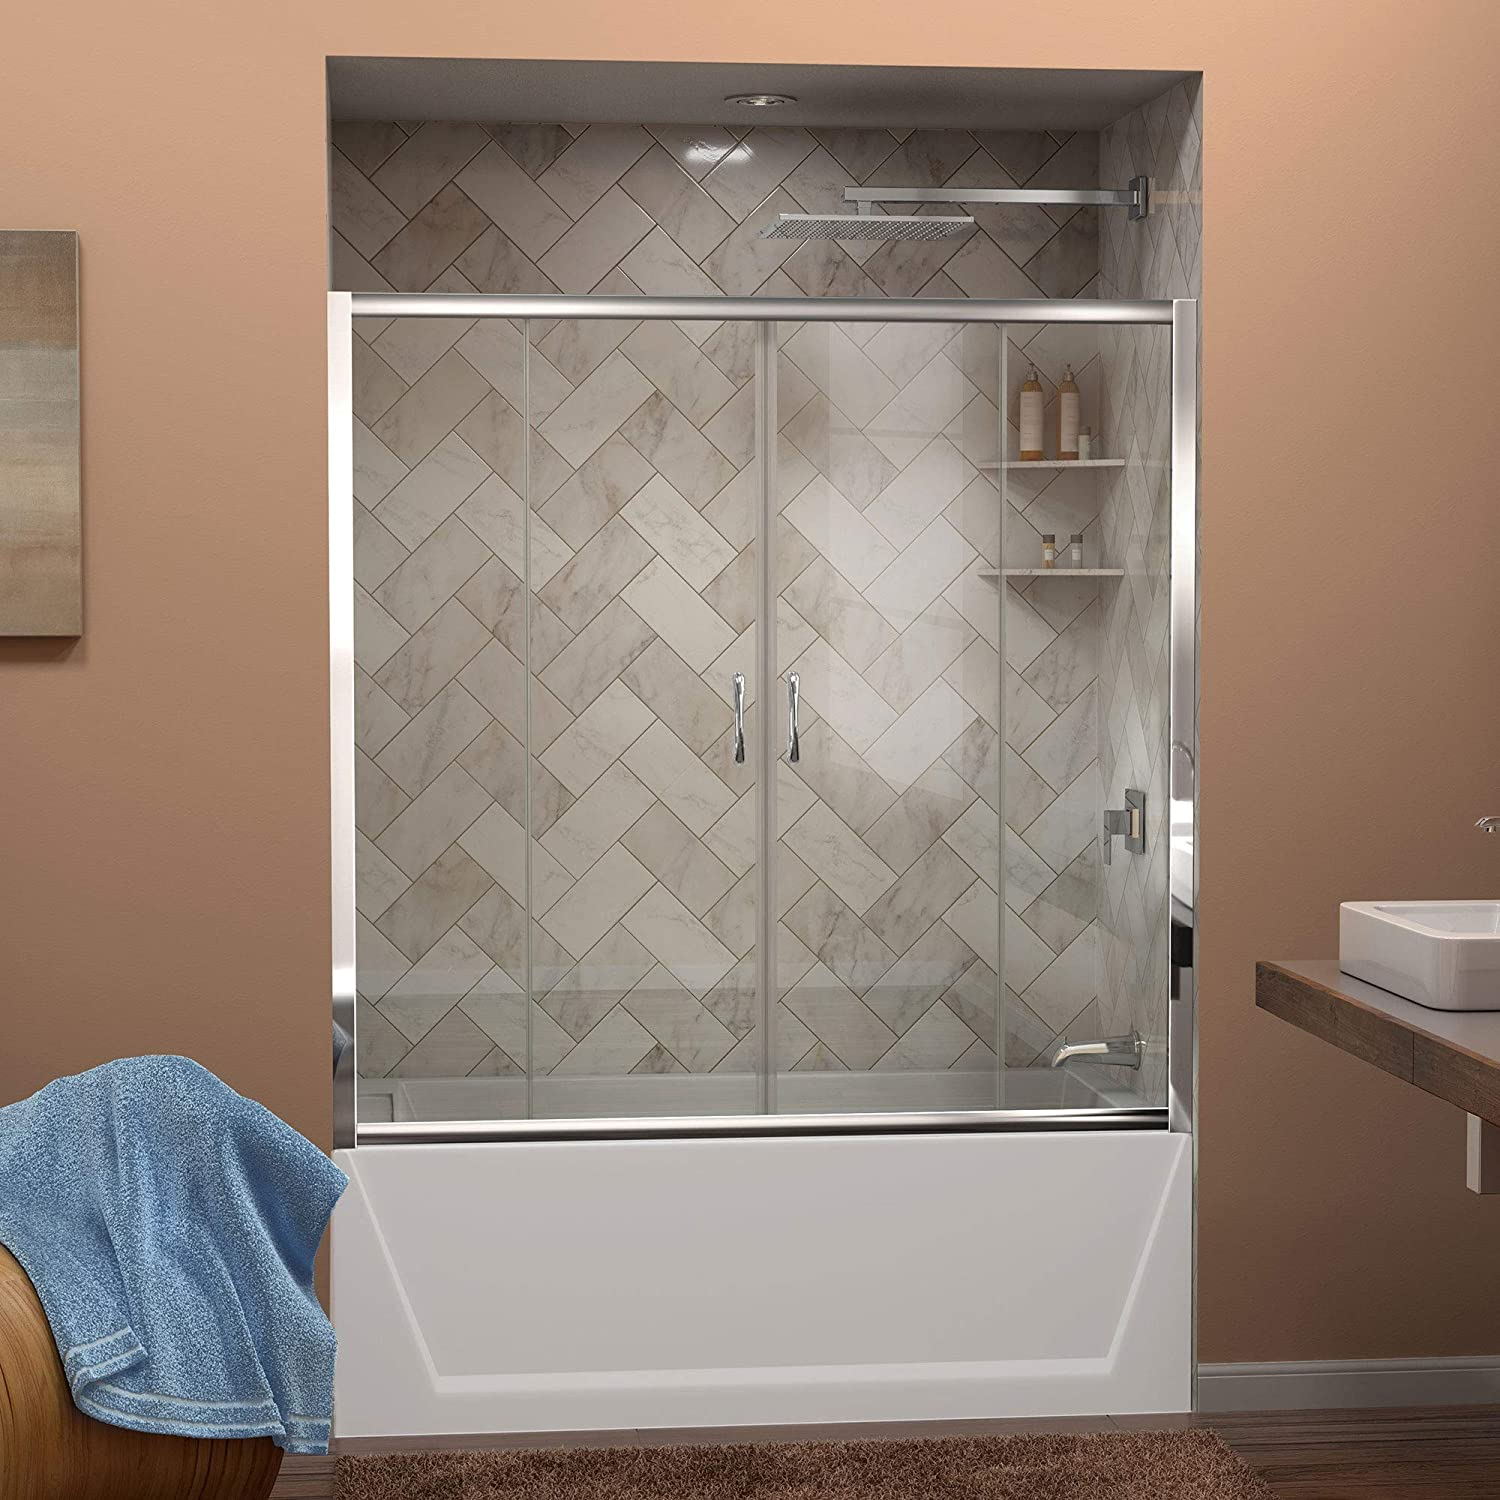 DreamLine Visions 56-60 in. W x 58 in. H Framed Sliding Tub Door in Chrome, SHDR-1160586-01